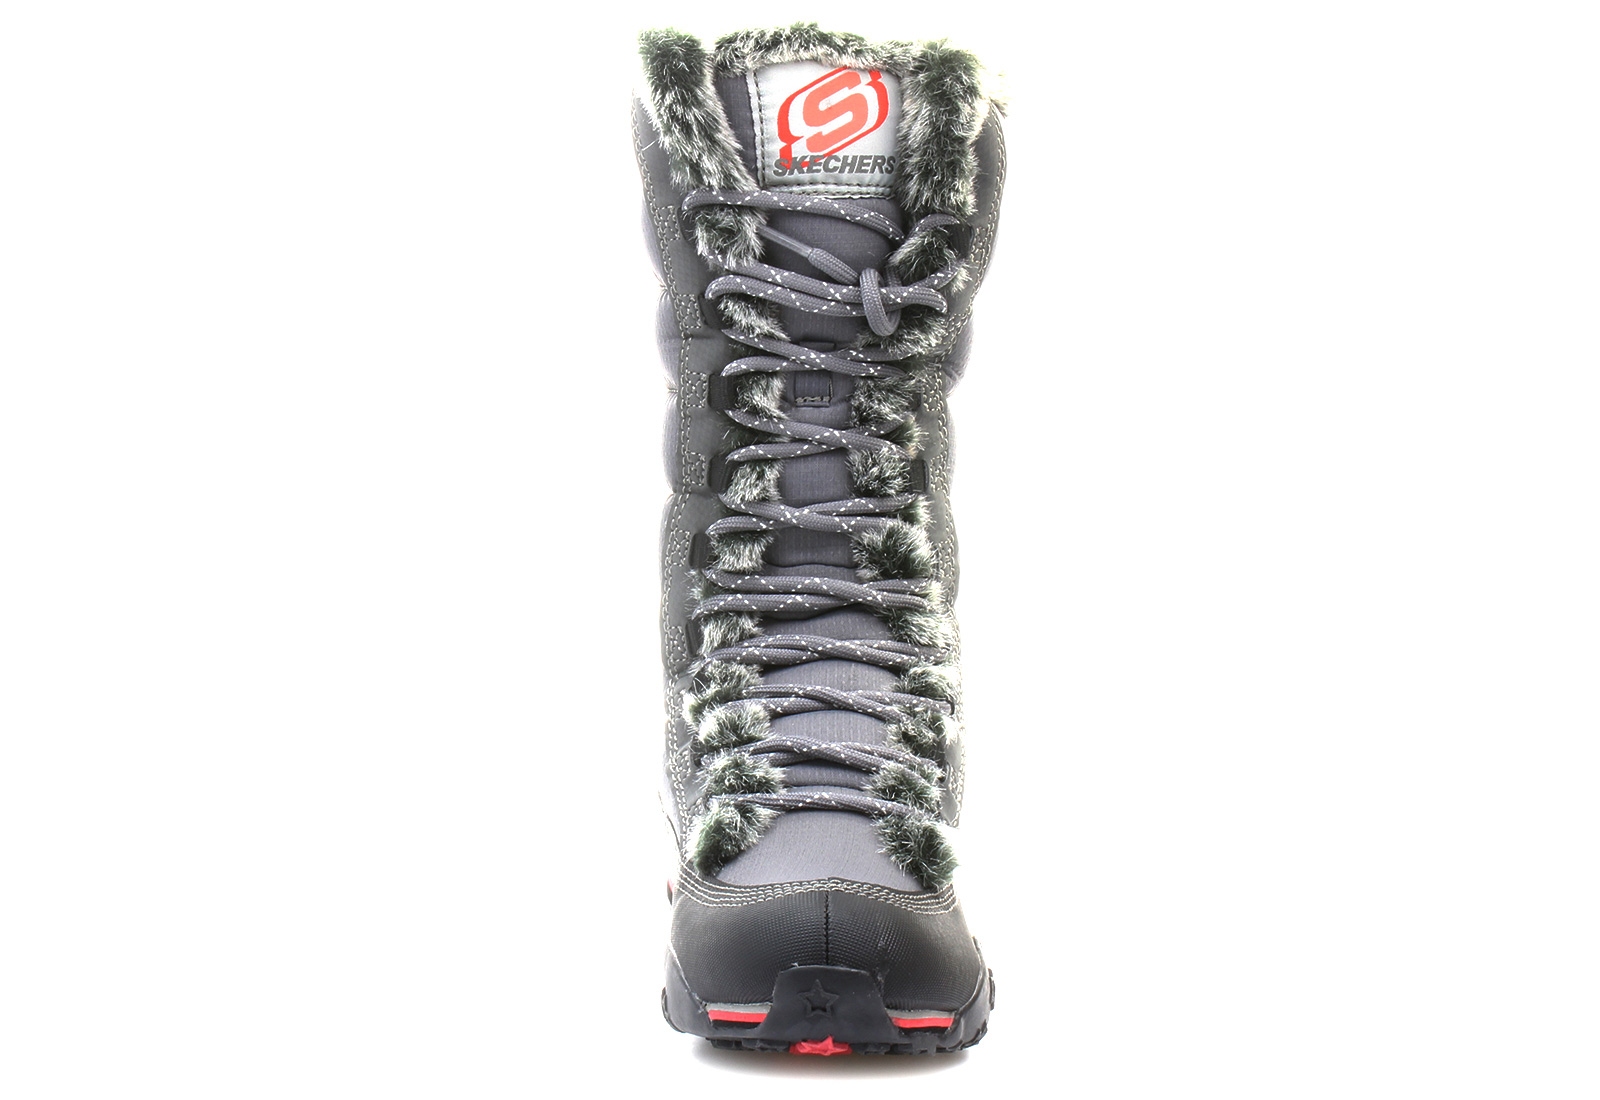 Skechers Boots - Boot High - 46476-gry - Online shop for sneakers ... 24dd128f58